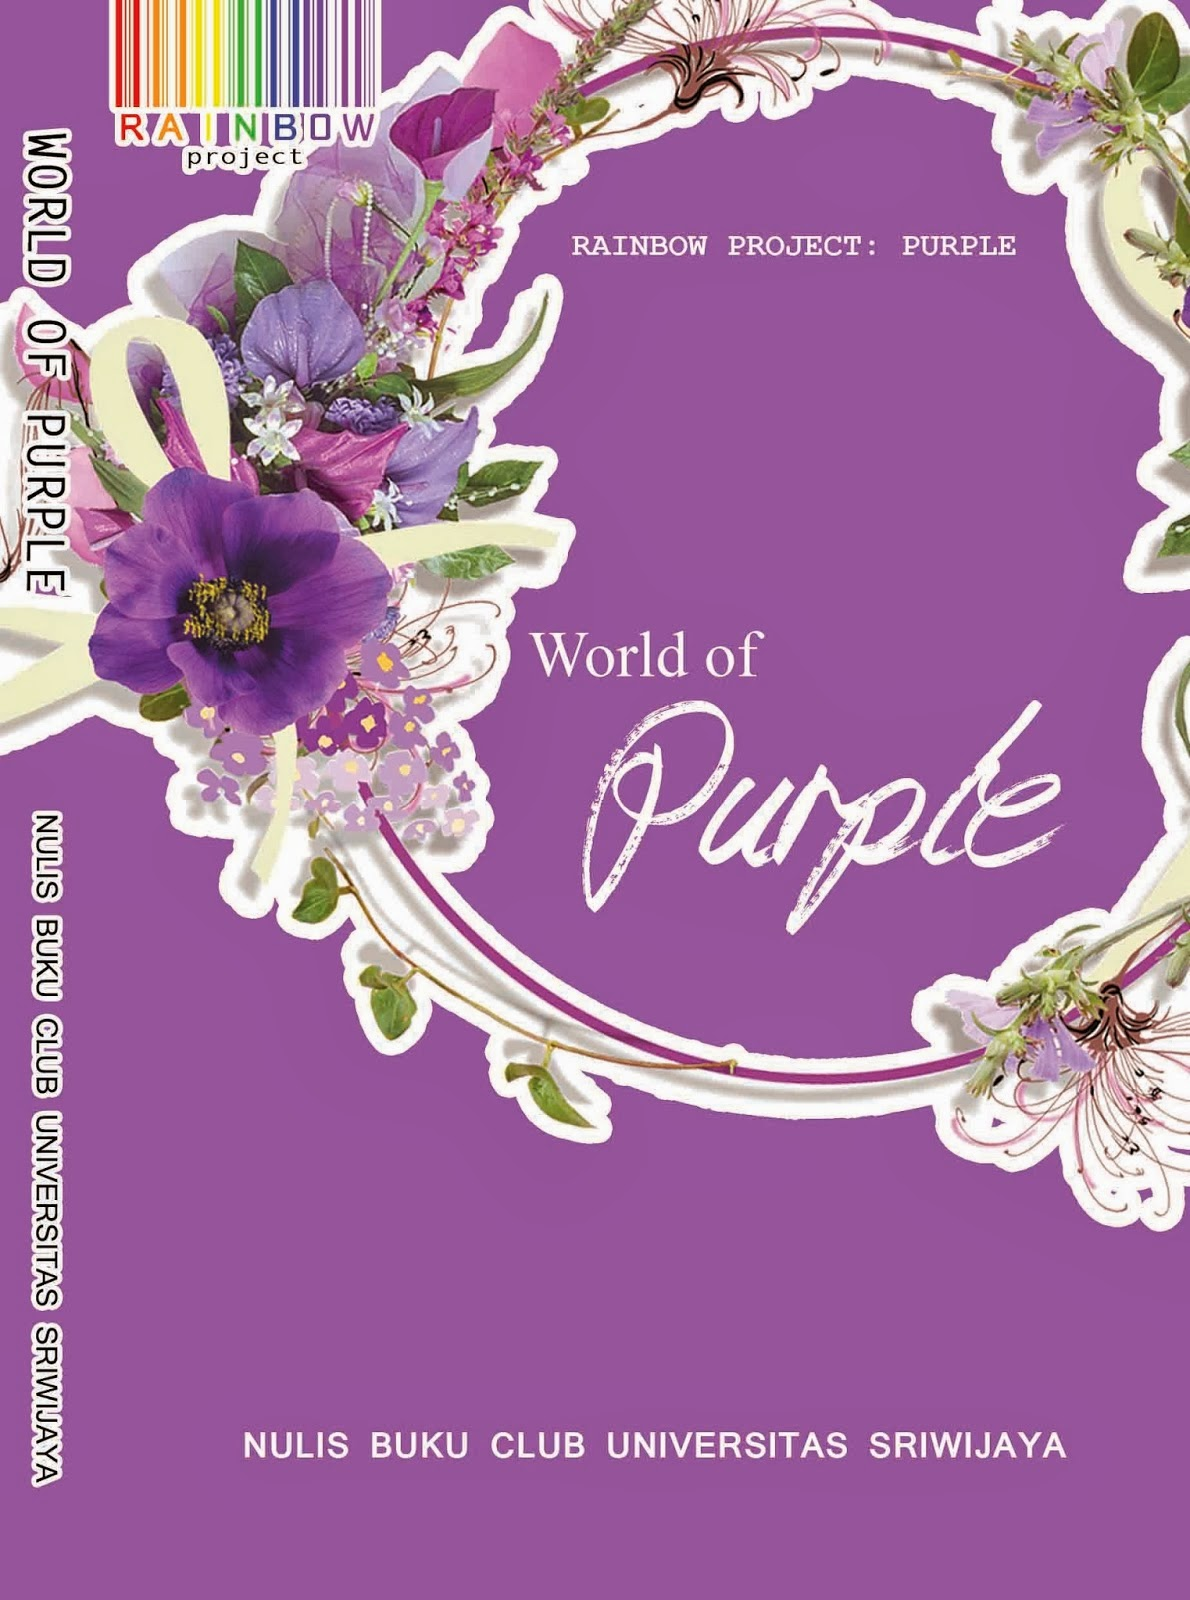 http://luphly-shie.blogspot.com/2014/03/my-book-world-of-purple.html